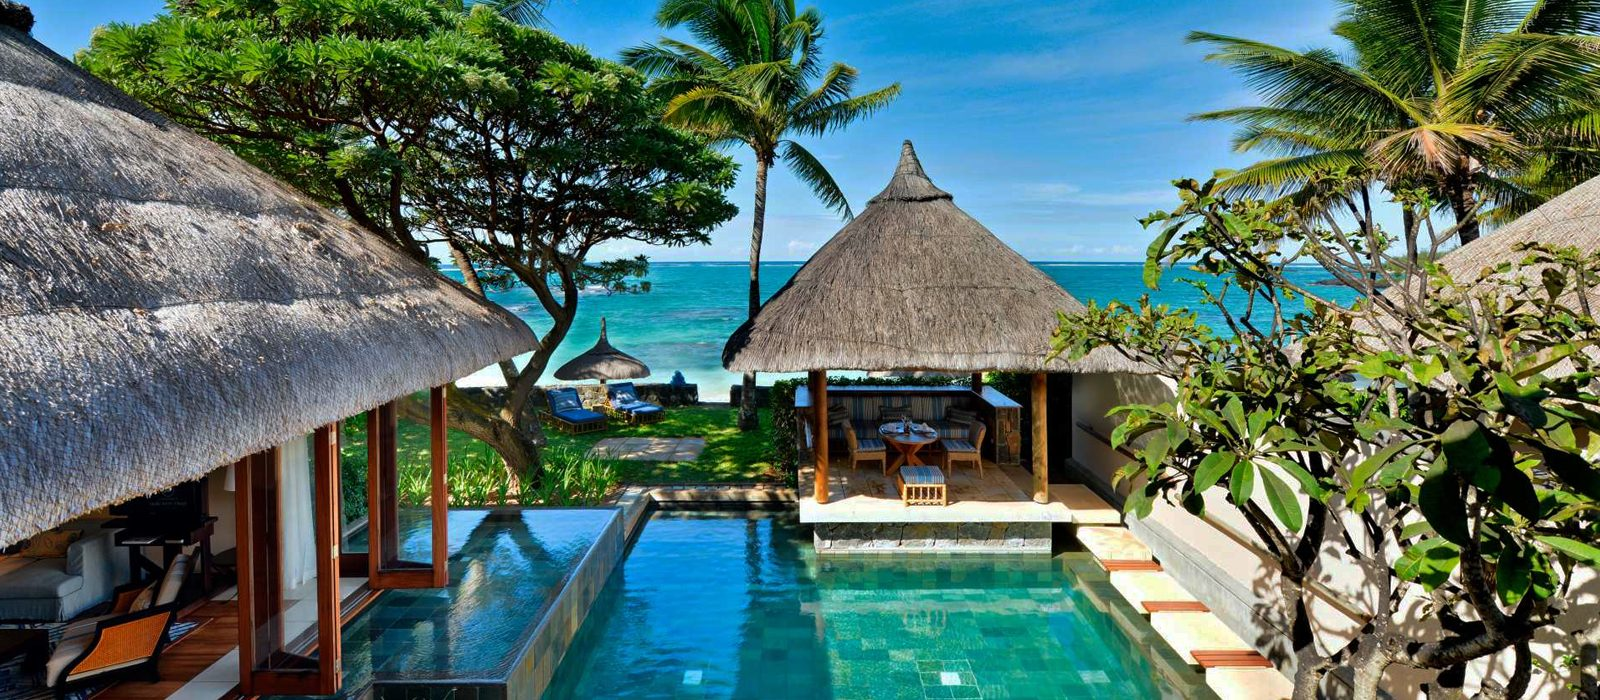 Mauritius Honeymoon Packages Mauritius Weddings Header 3